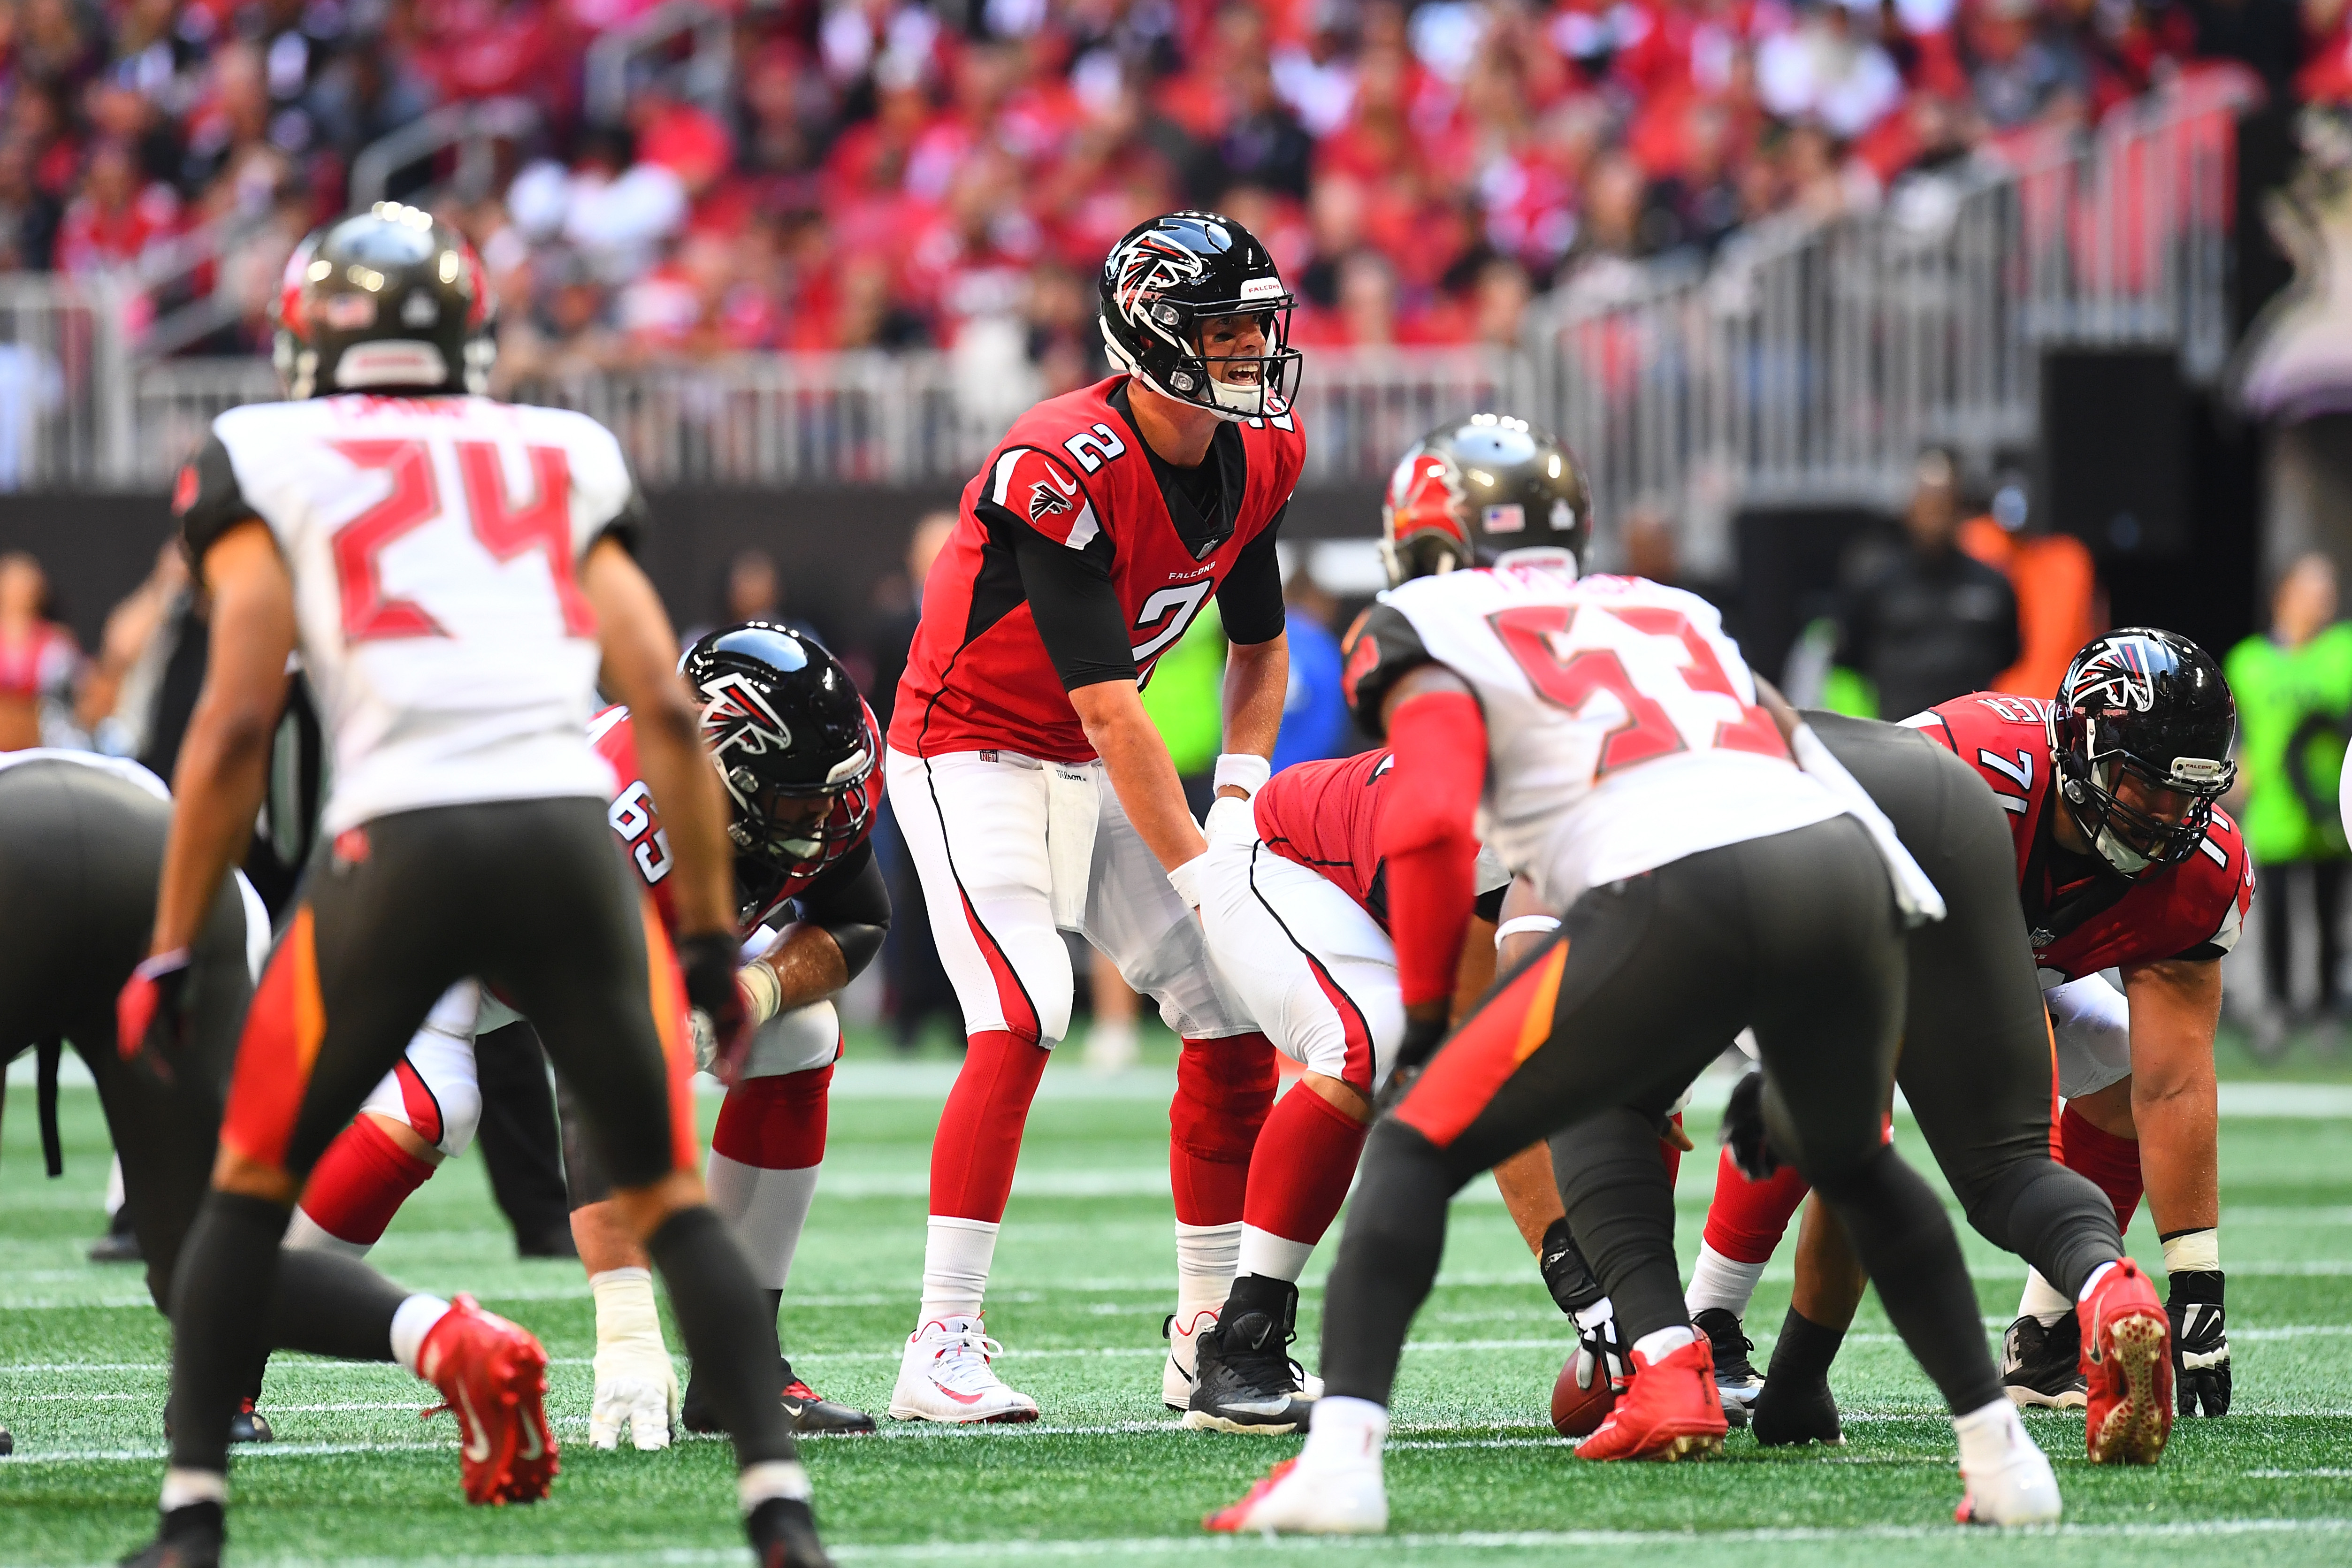 Matt Ryan #2 of the Atlanta Falcons during the second quarter against the Tampa Bay Buccaneers at Mercedes-Benz Stadium on October 14, 2018 in Atlanta, Georgia.